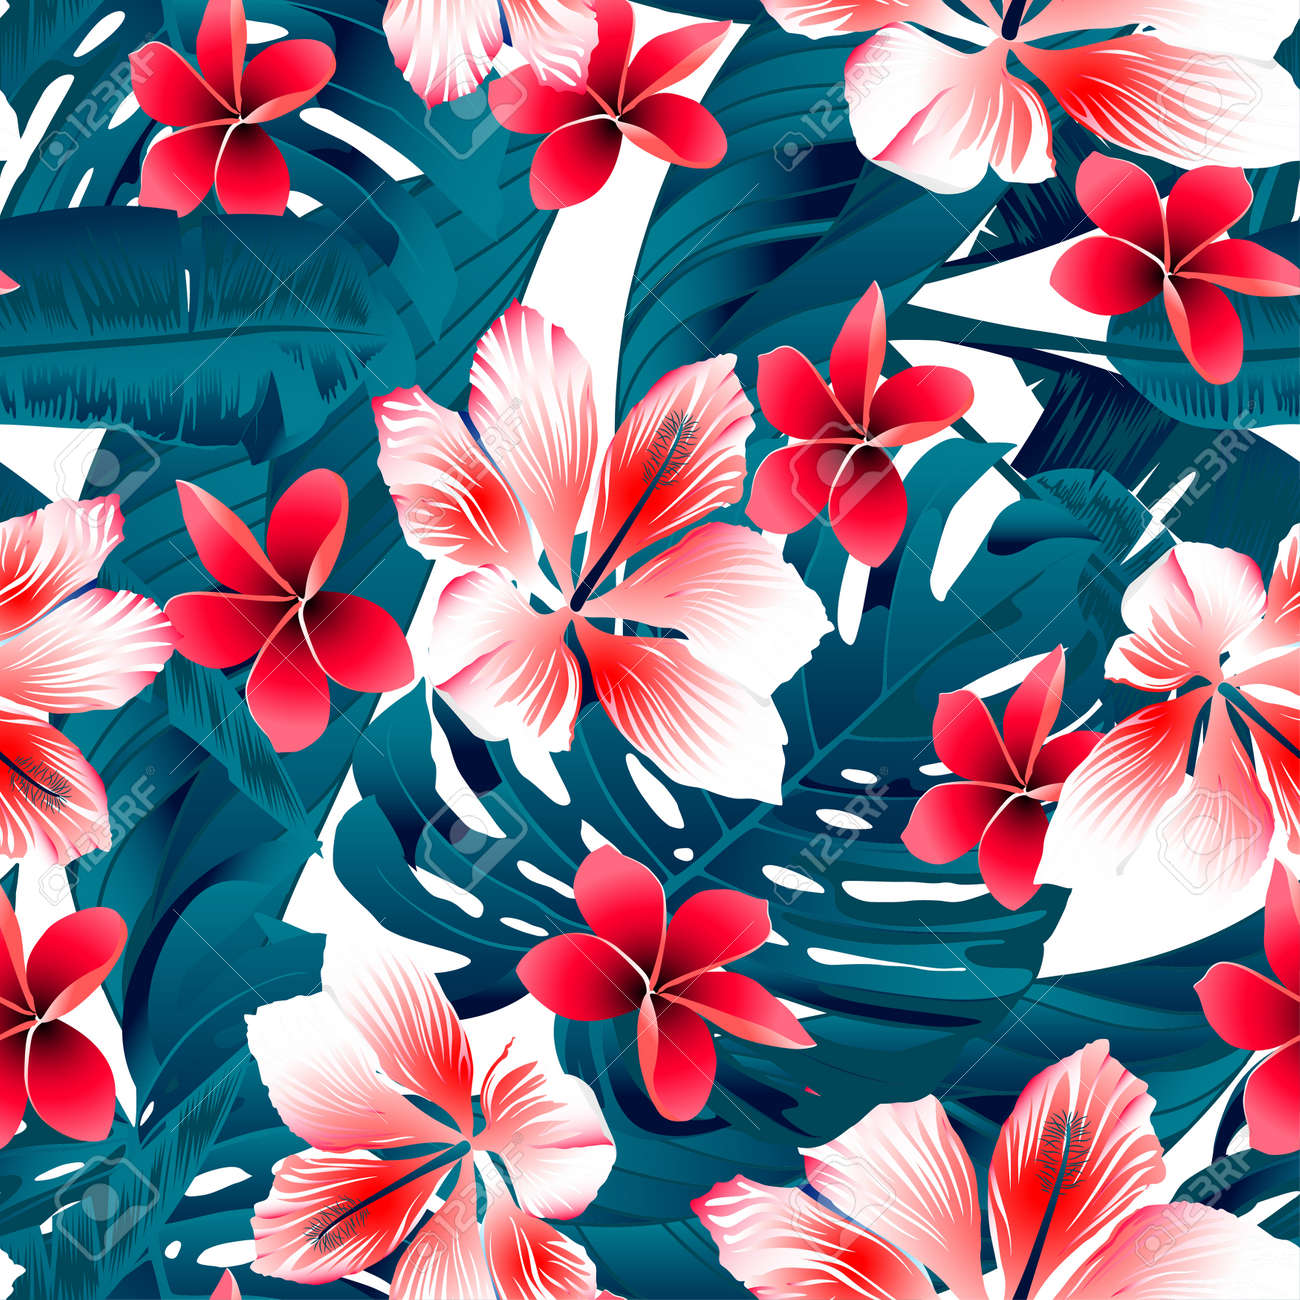 Red And White Tropical Hibiscus Flowers Seamless Pattern Royalty